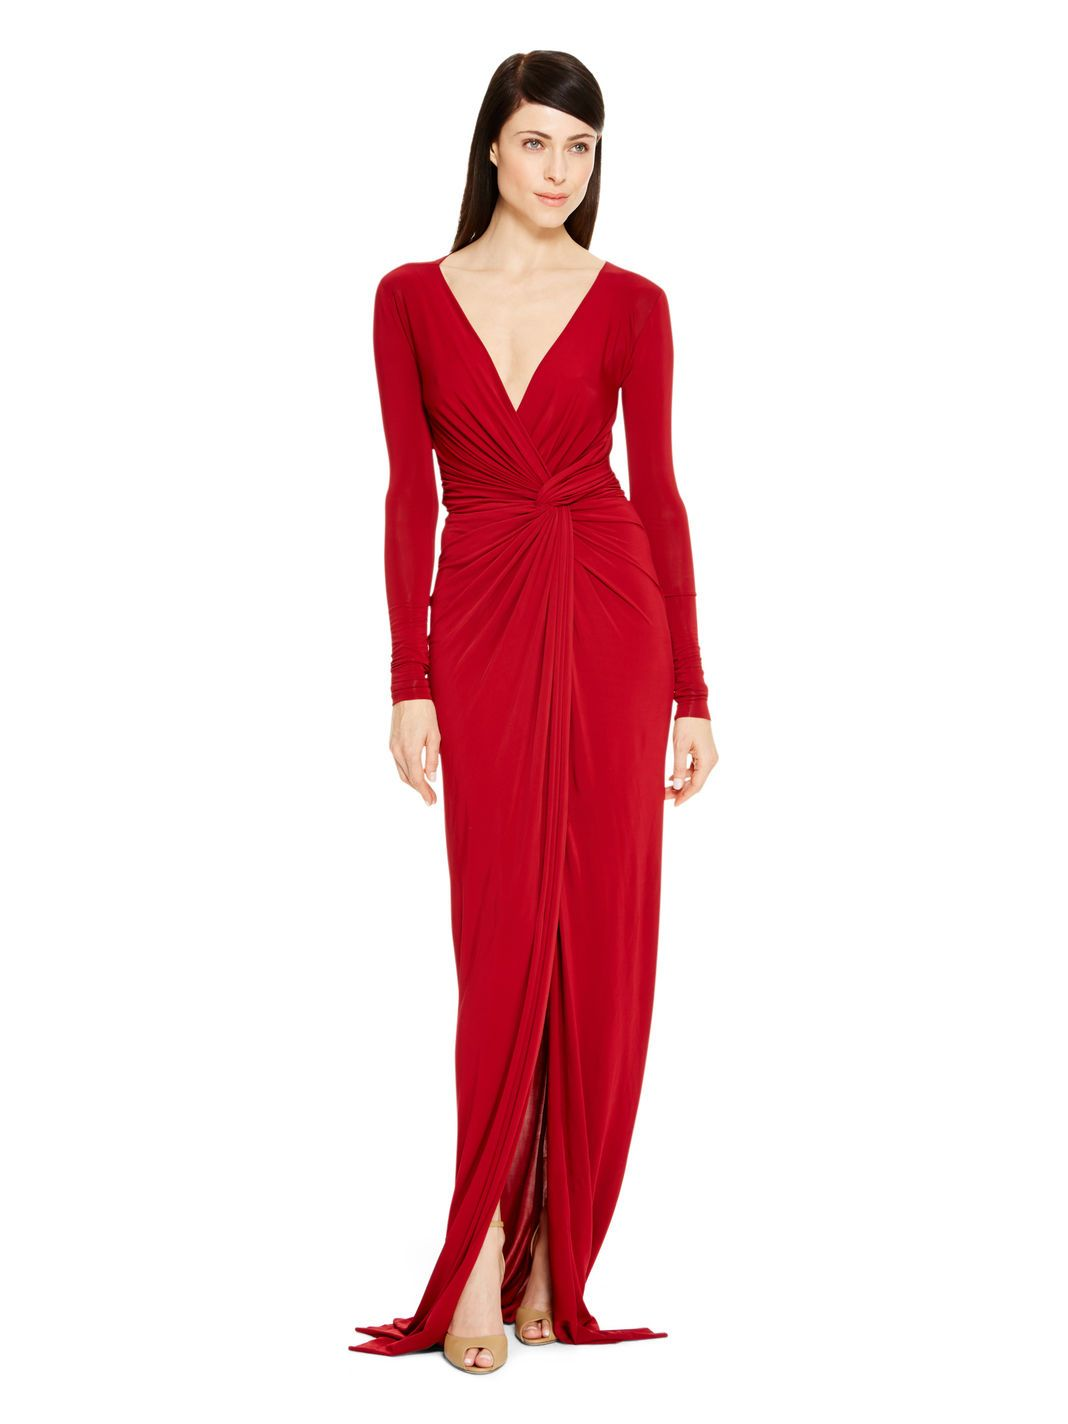 Pin by sabeth renny on fashion collection pinterest knot dress